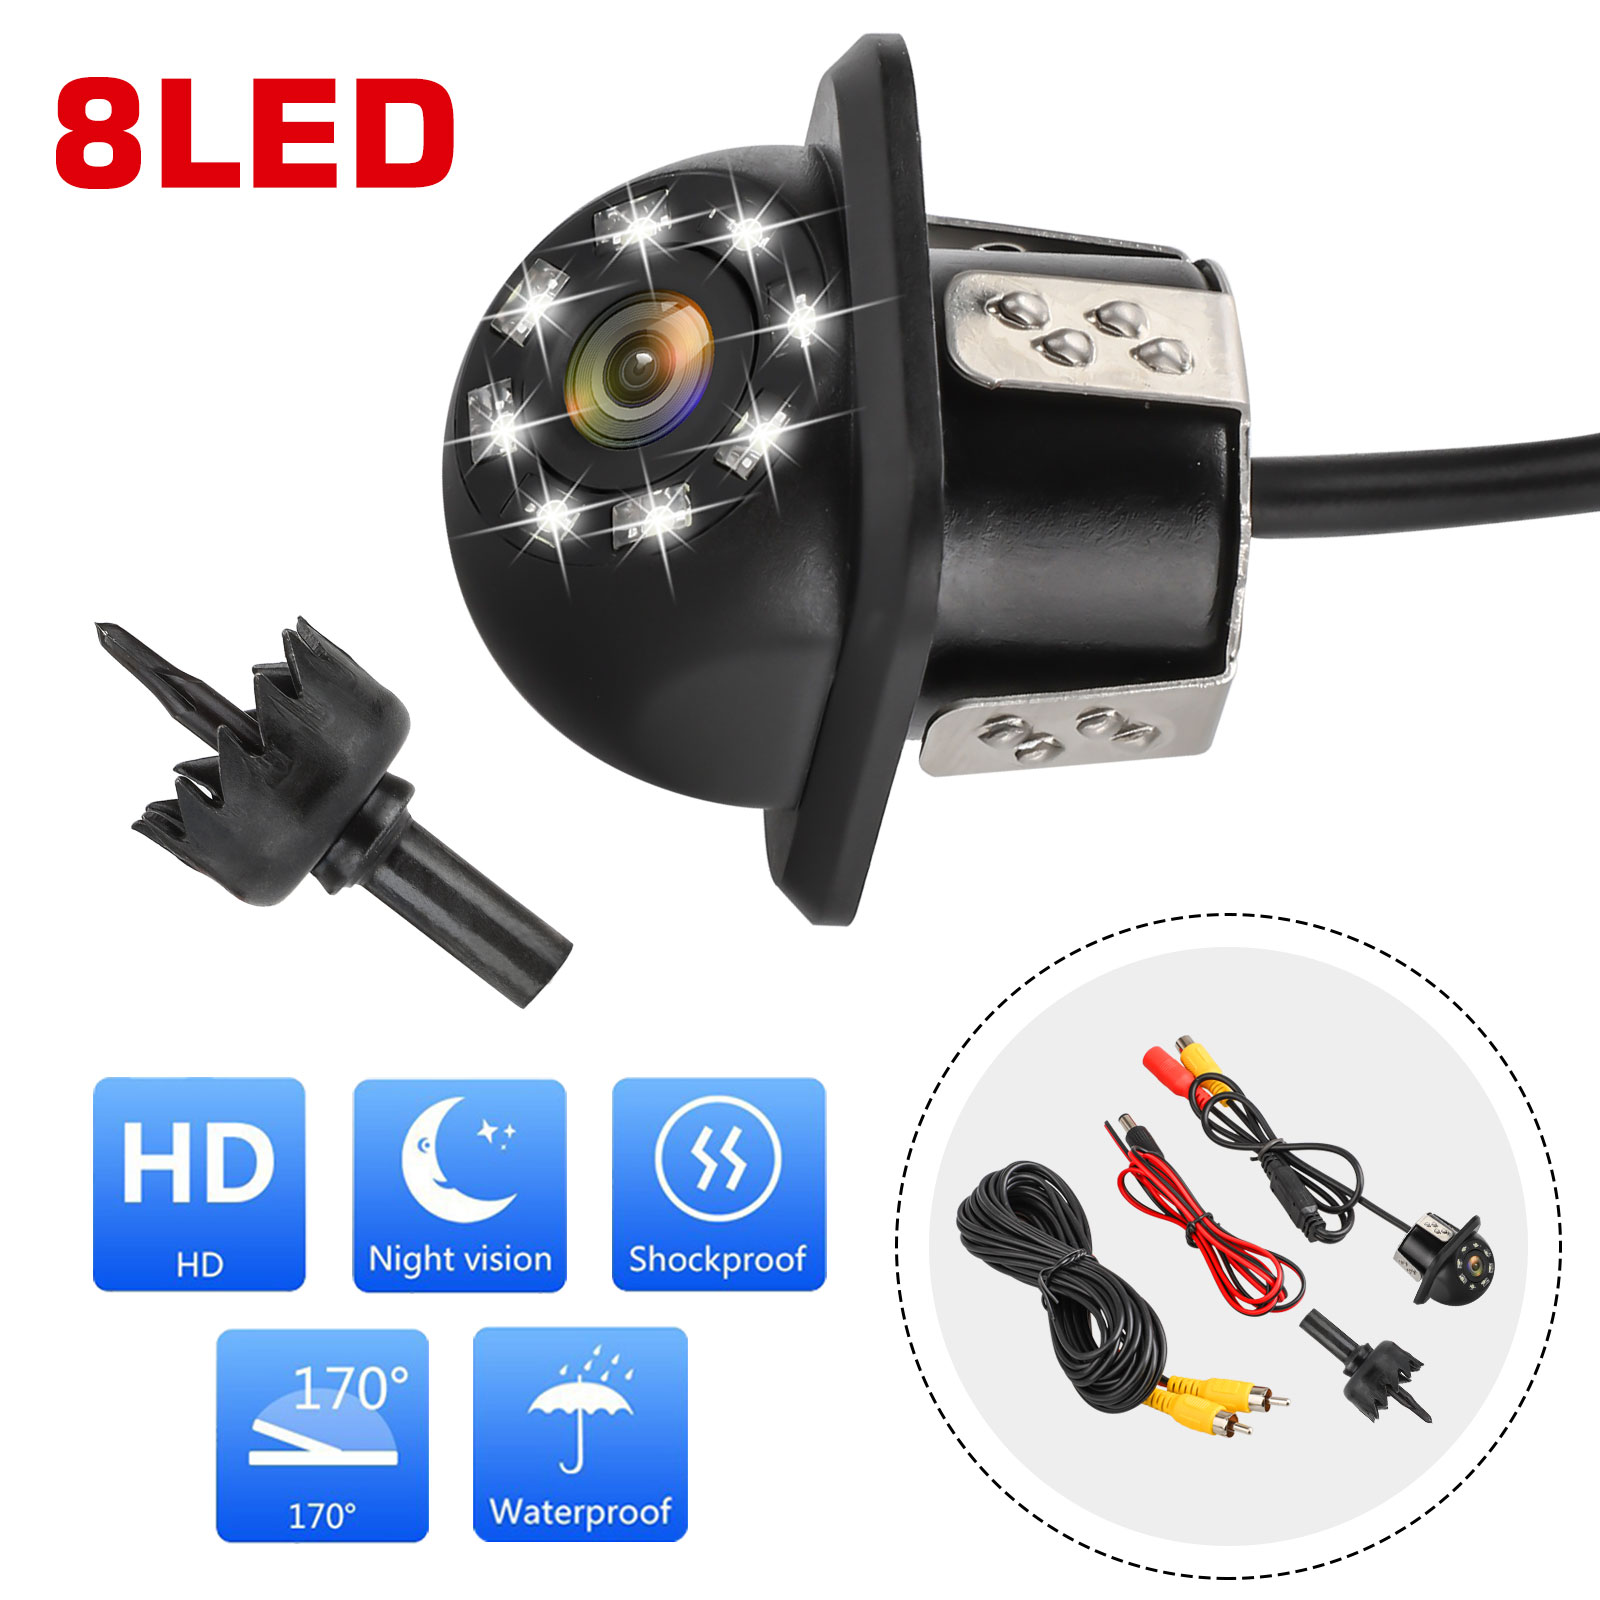 Waterproof-8-LED-Car-Backup-Rear-View-Reverse-Parking-HD-Camera-w-Night-Vision